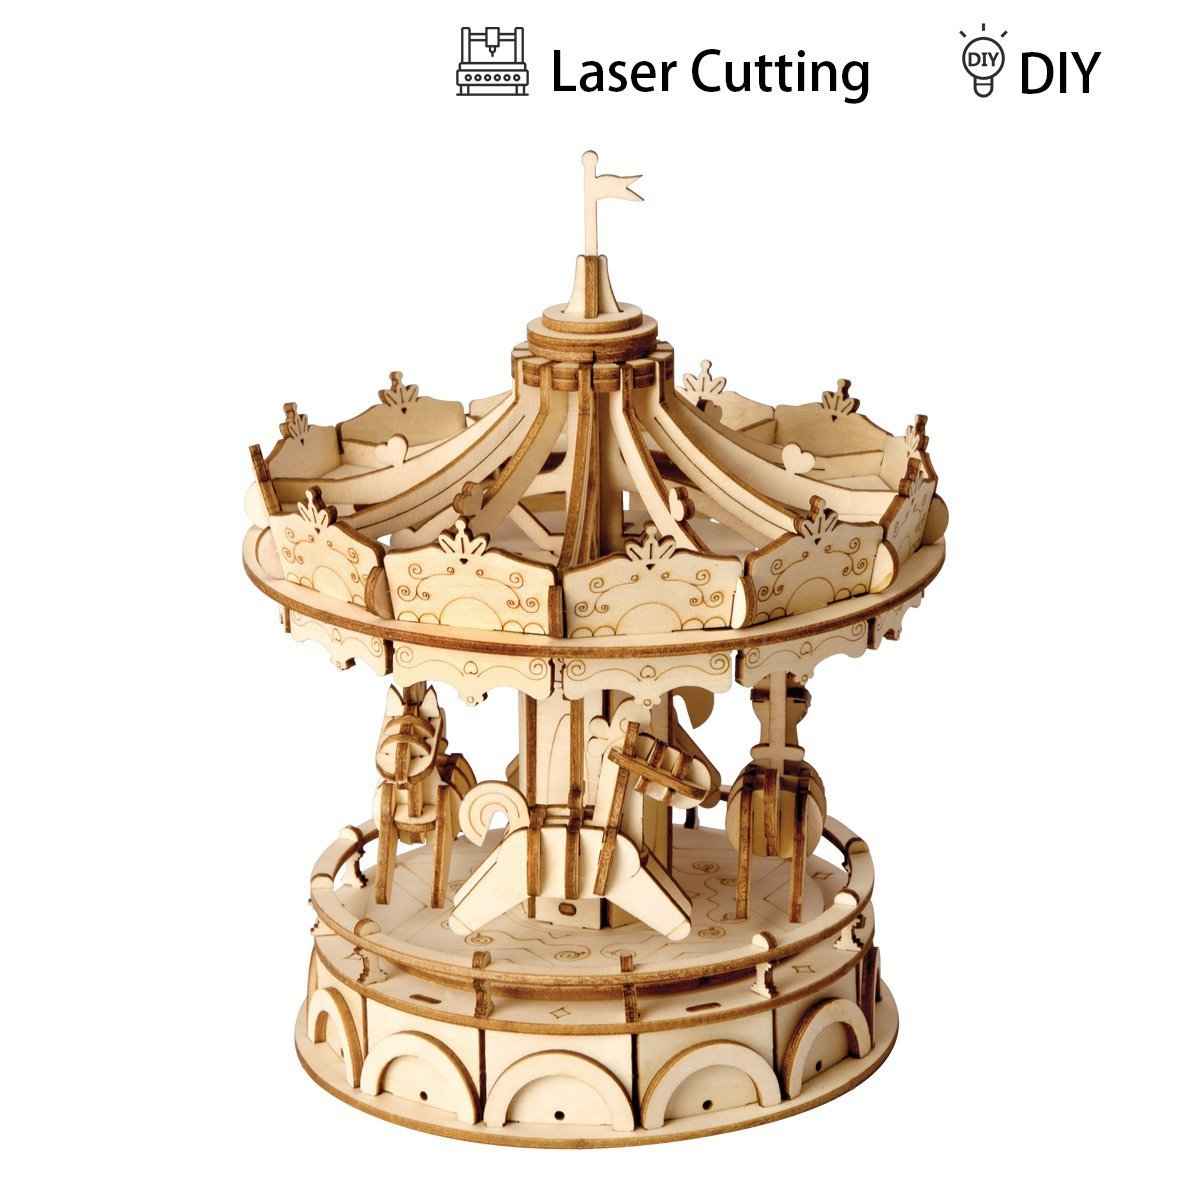 ROBOTIME 3D Merry-Go-Round Wooden Jigsaws Kit Wooden Puzzles DIY Hand Craft Mechanical Toy Gift for Kids Teens Adults